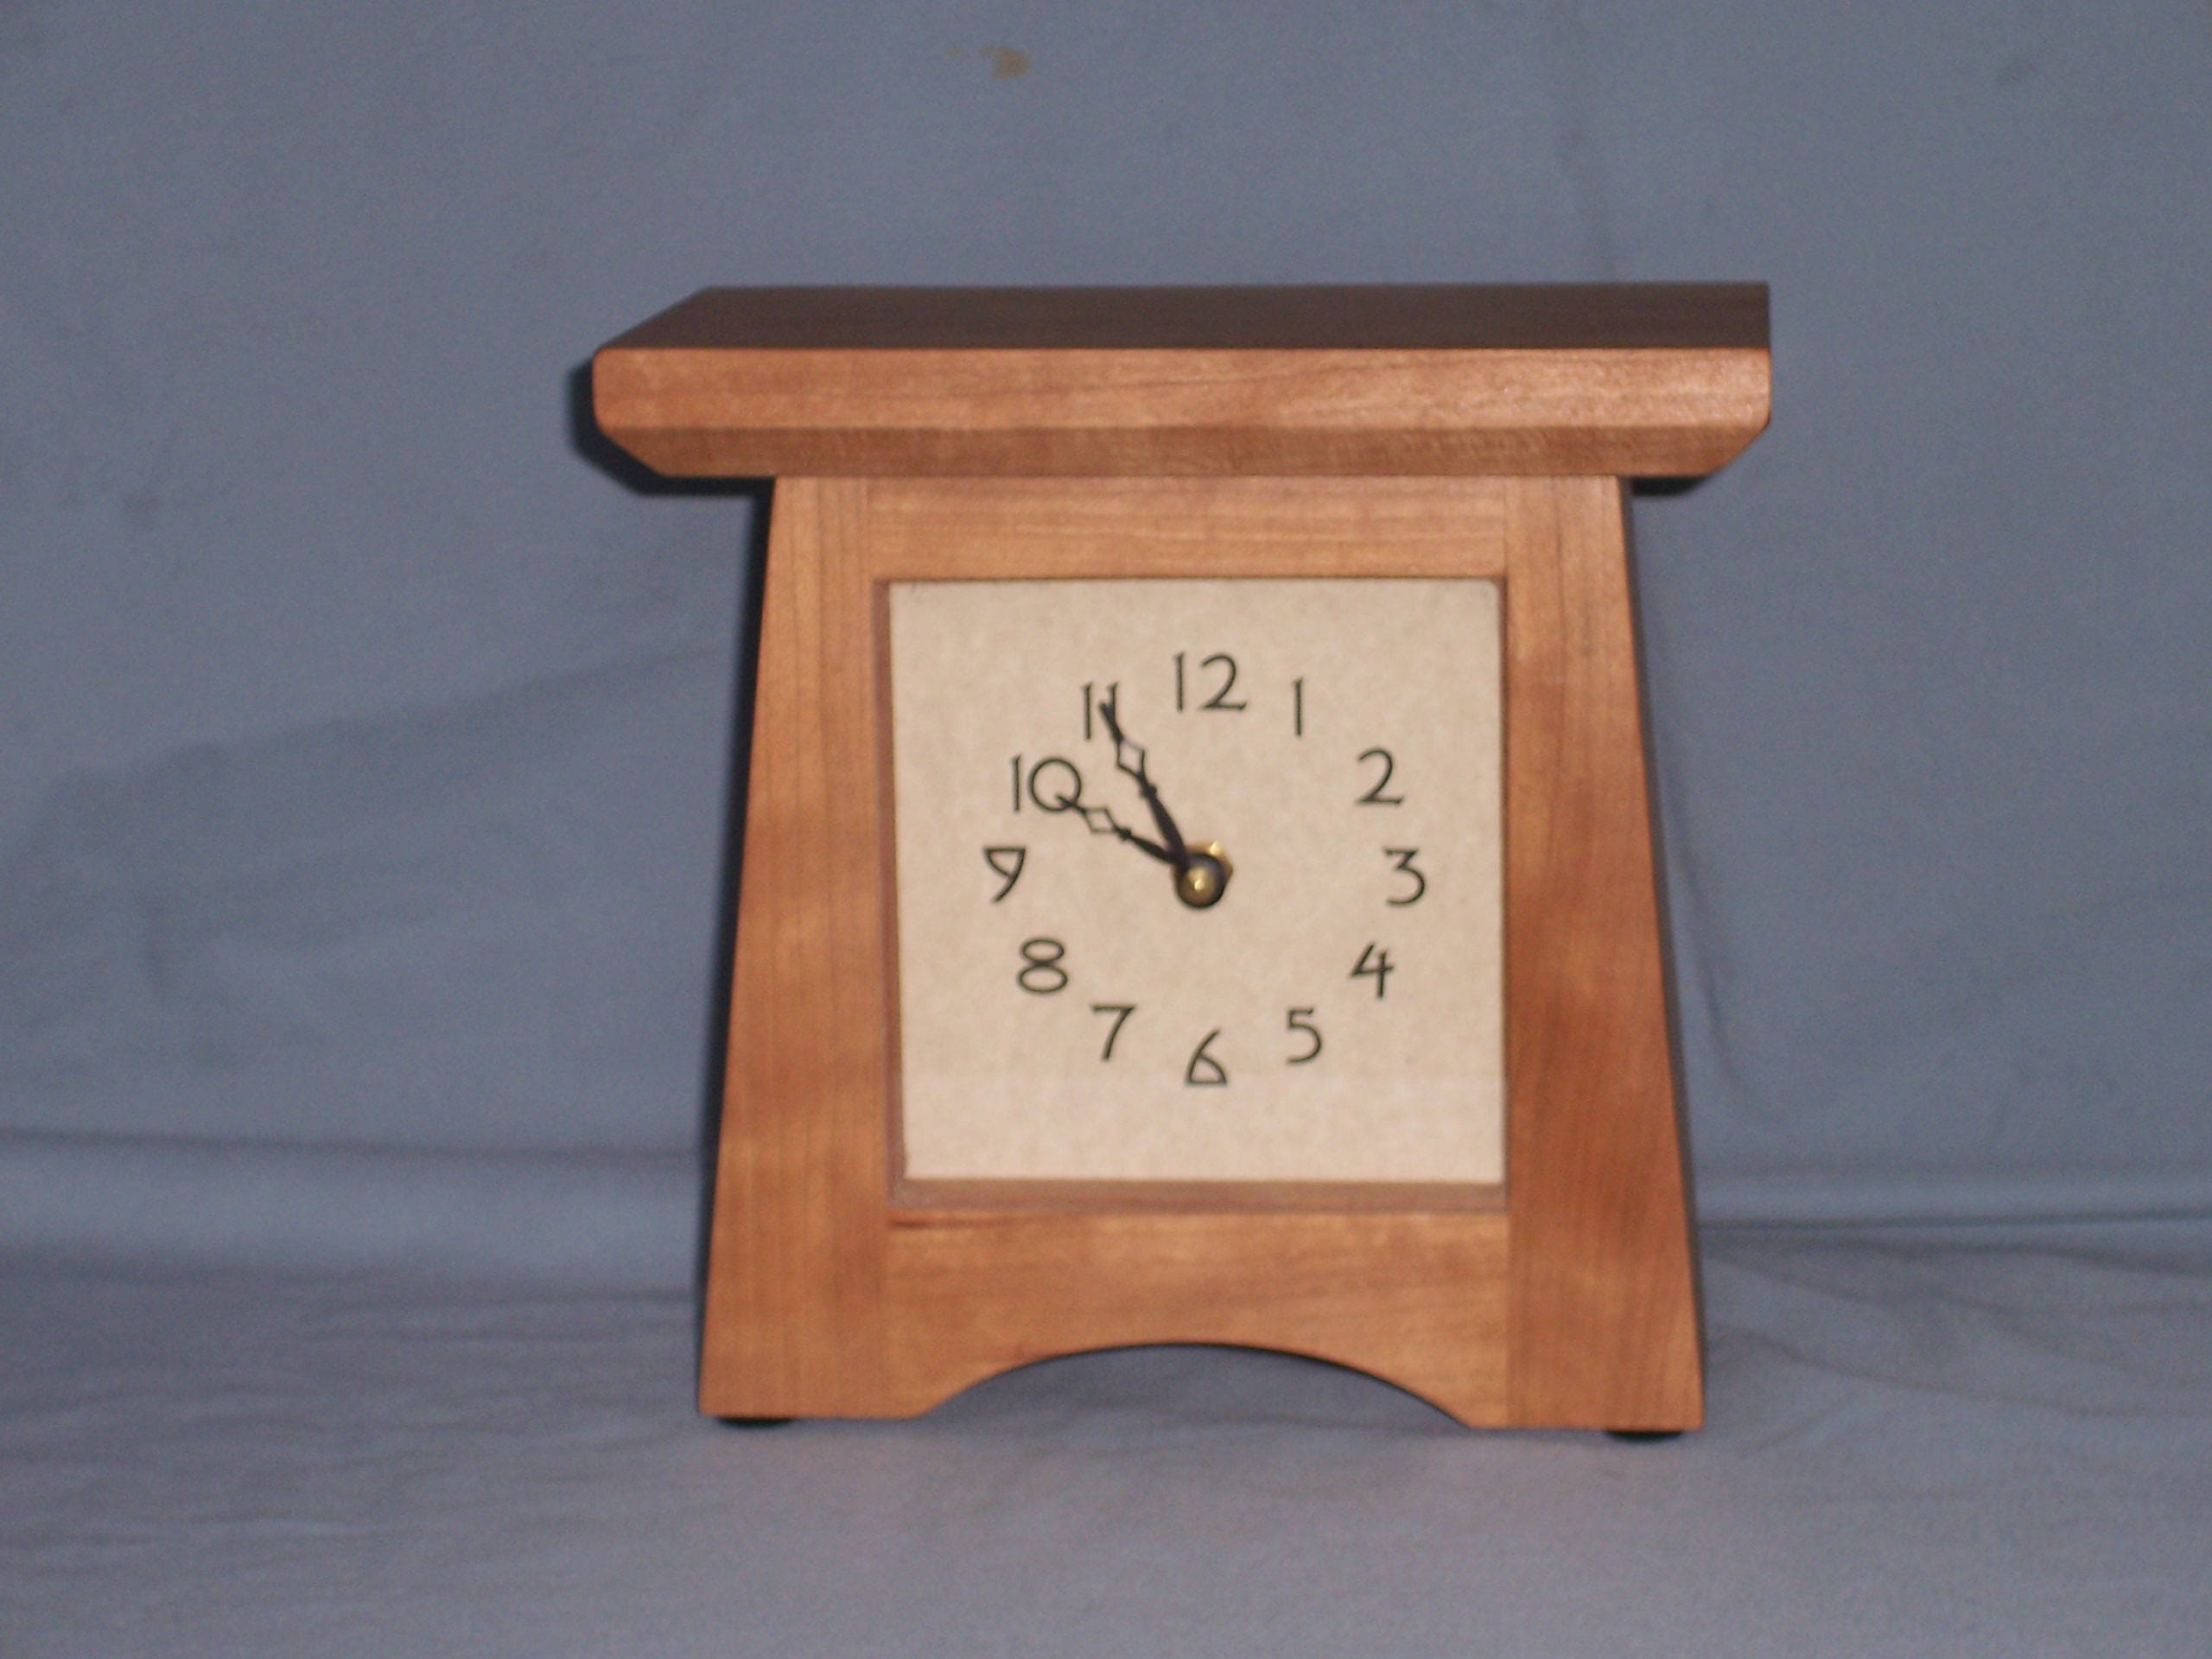 Reduced craftsman clock mantle clock cherry mission style details handcrafted classic craftsmenmission clock amipublicfo Gallery